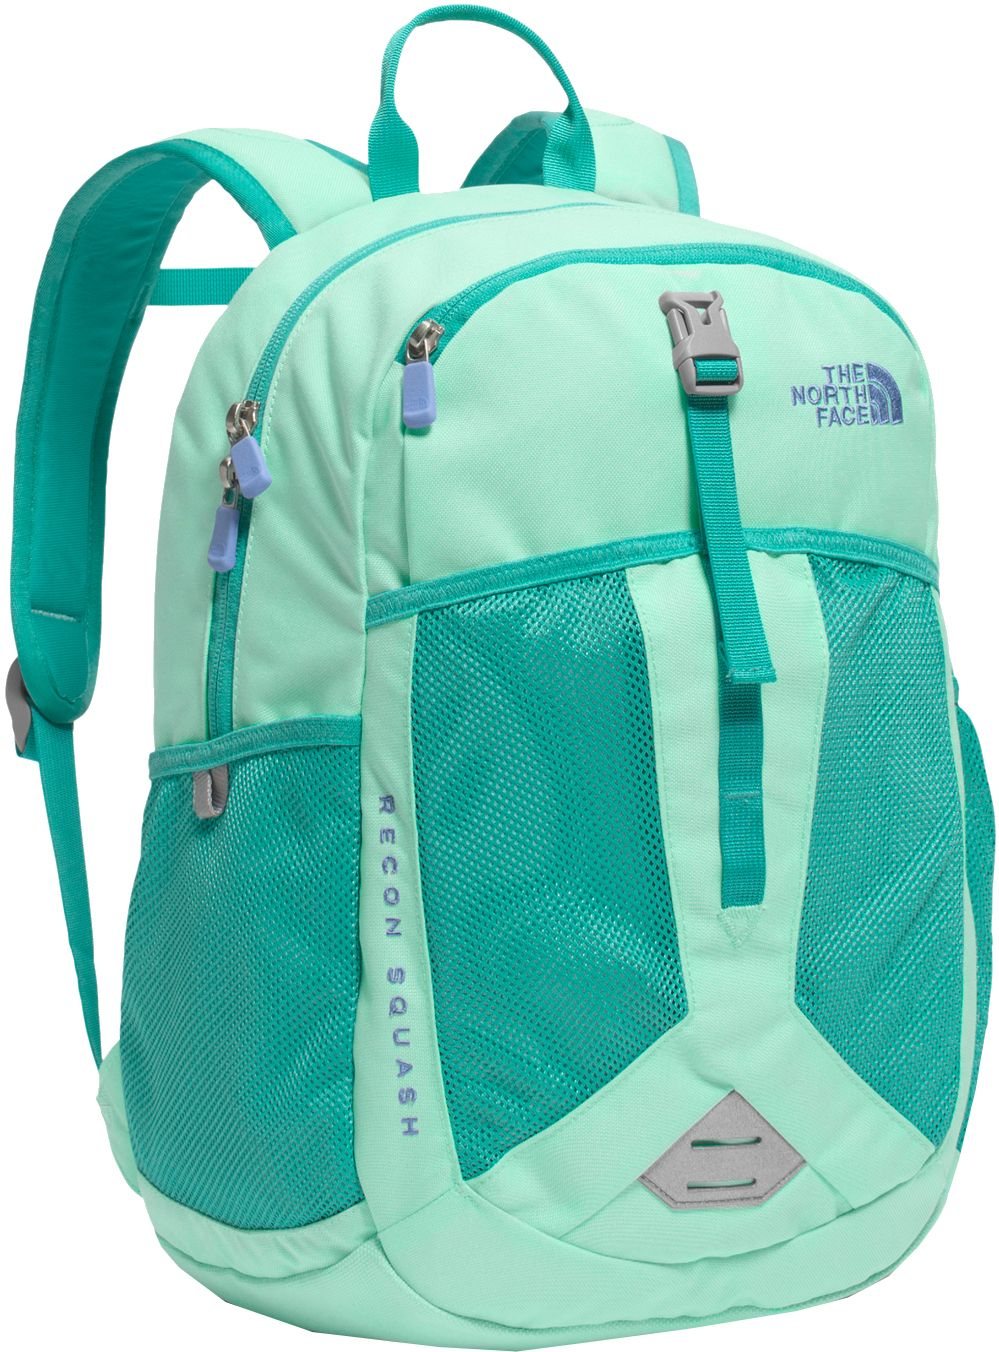 Backpacks for Girls | DICK'S Sporting Goods